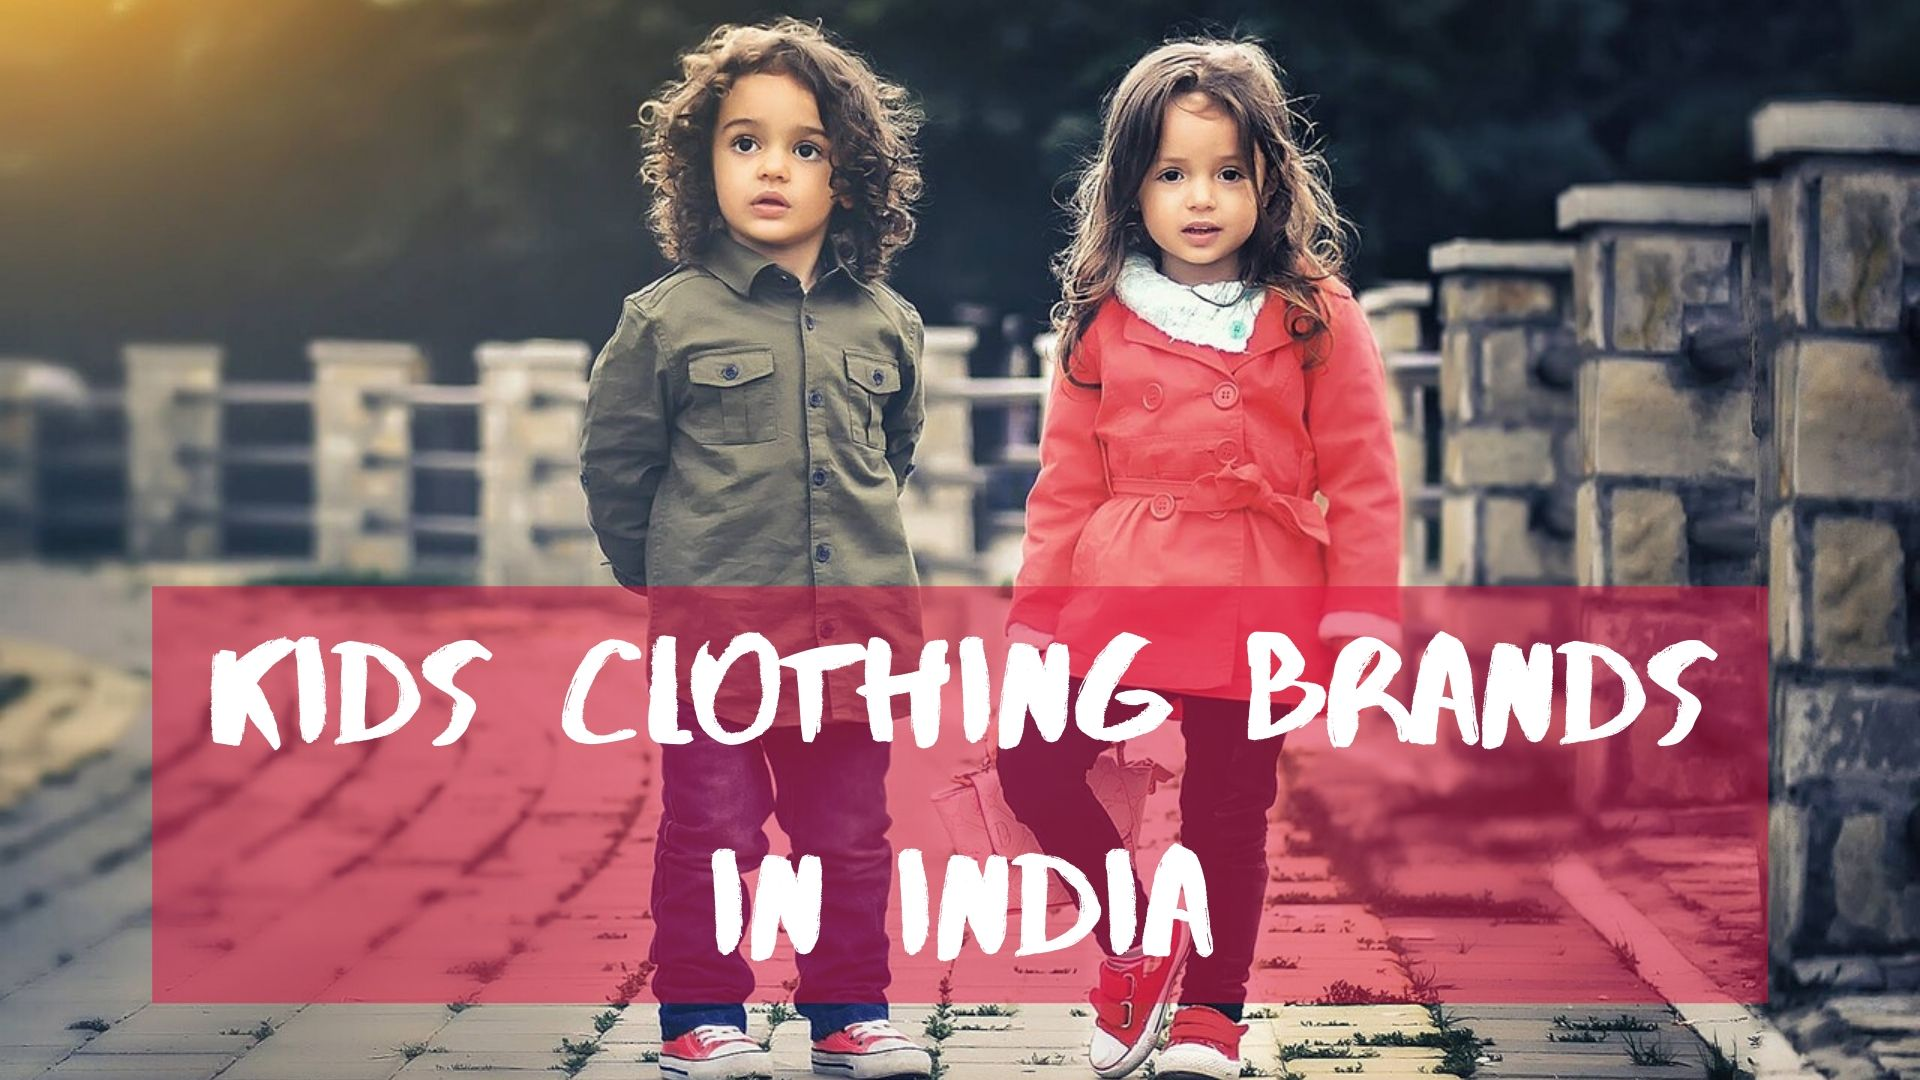 Kids Clothing Brands In India